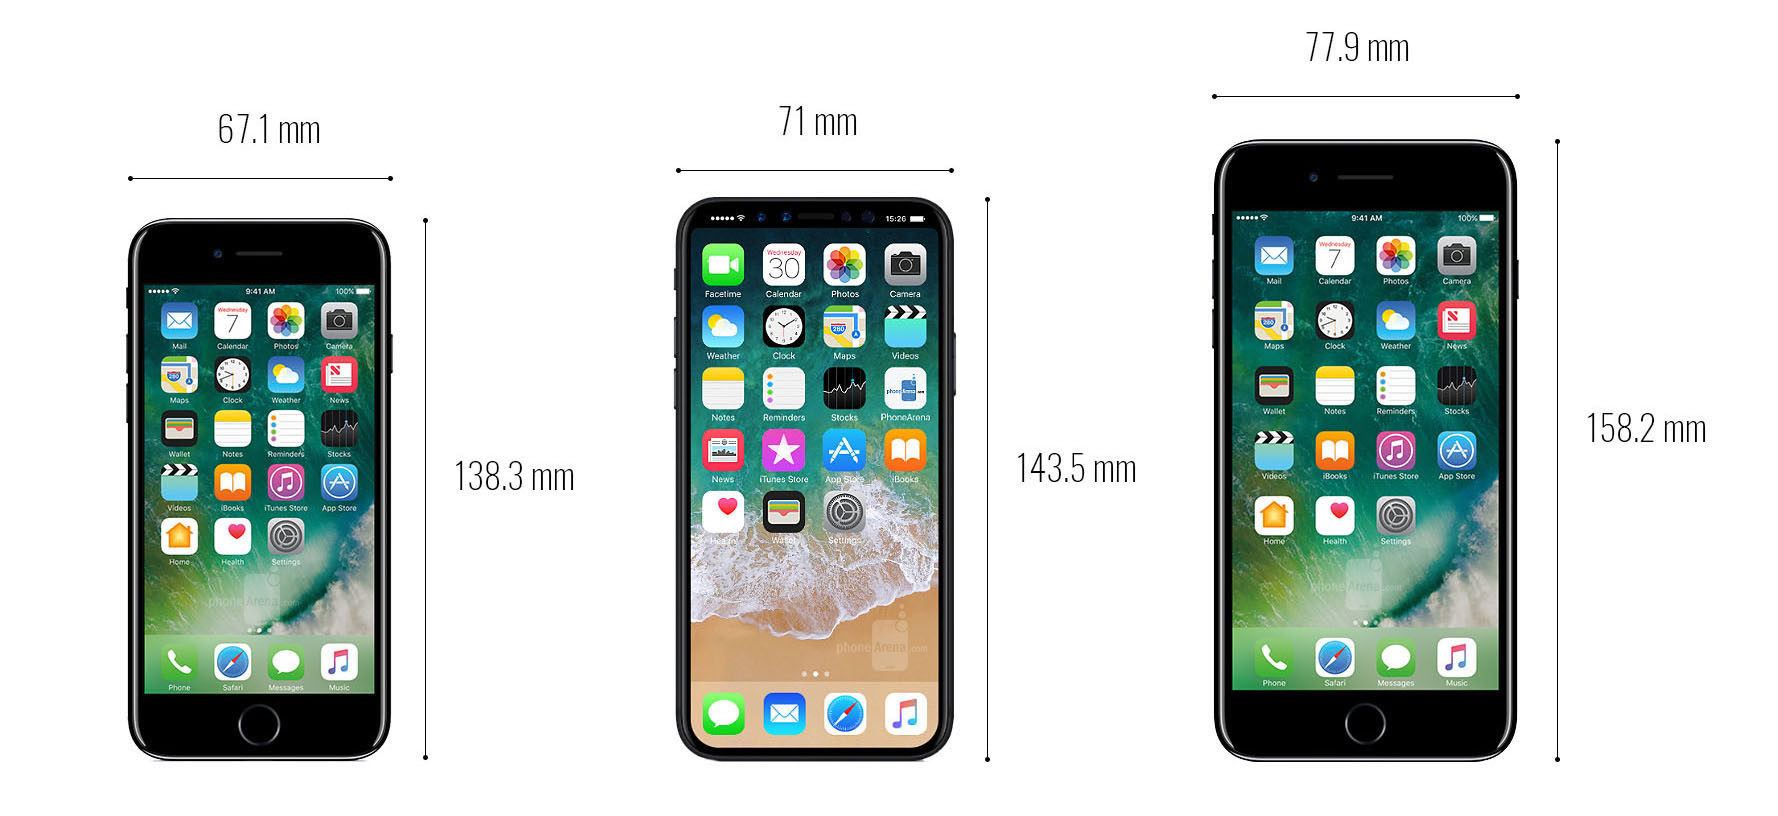 1501772562_apple-iphone-7-vs-iphone-8-and-7-plus.jpg